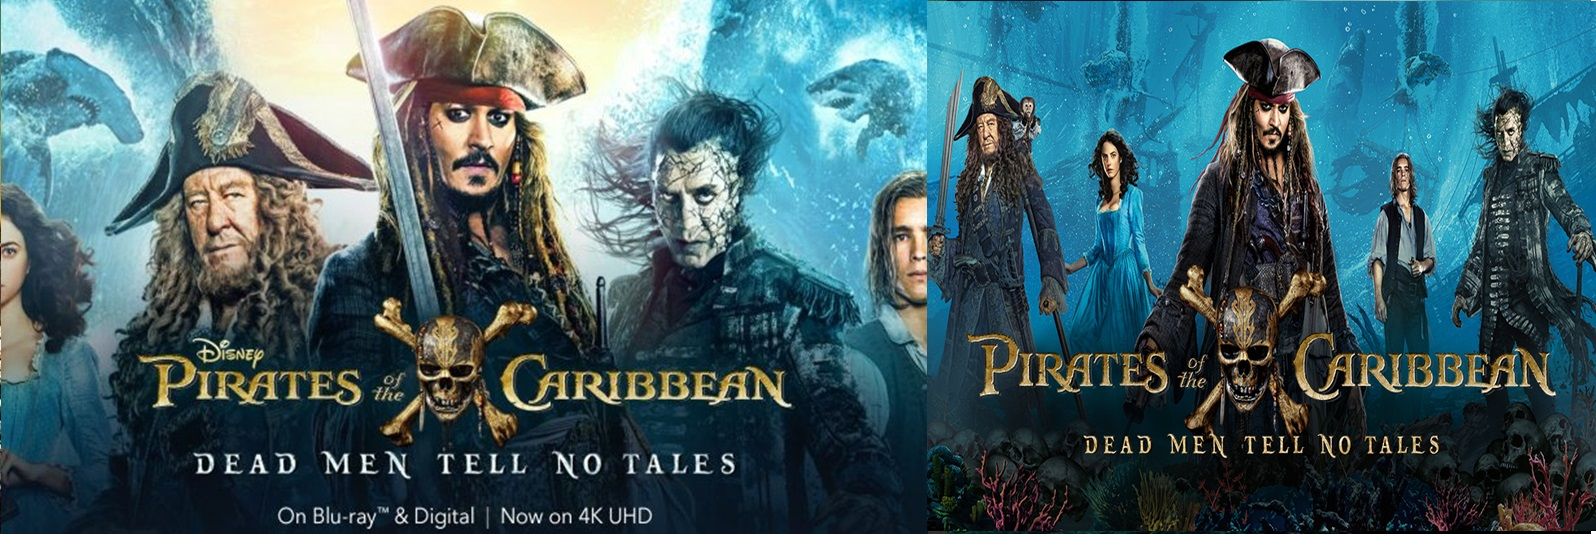 Pirates of the Caribbean Dead Men Tell No Tales 2017 Full Movie Dual Audio [Hindi – English] 720p – 480p ORG BRRip 400MB - 1.3GB ESubs Free Download